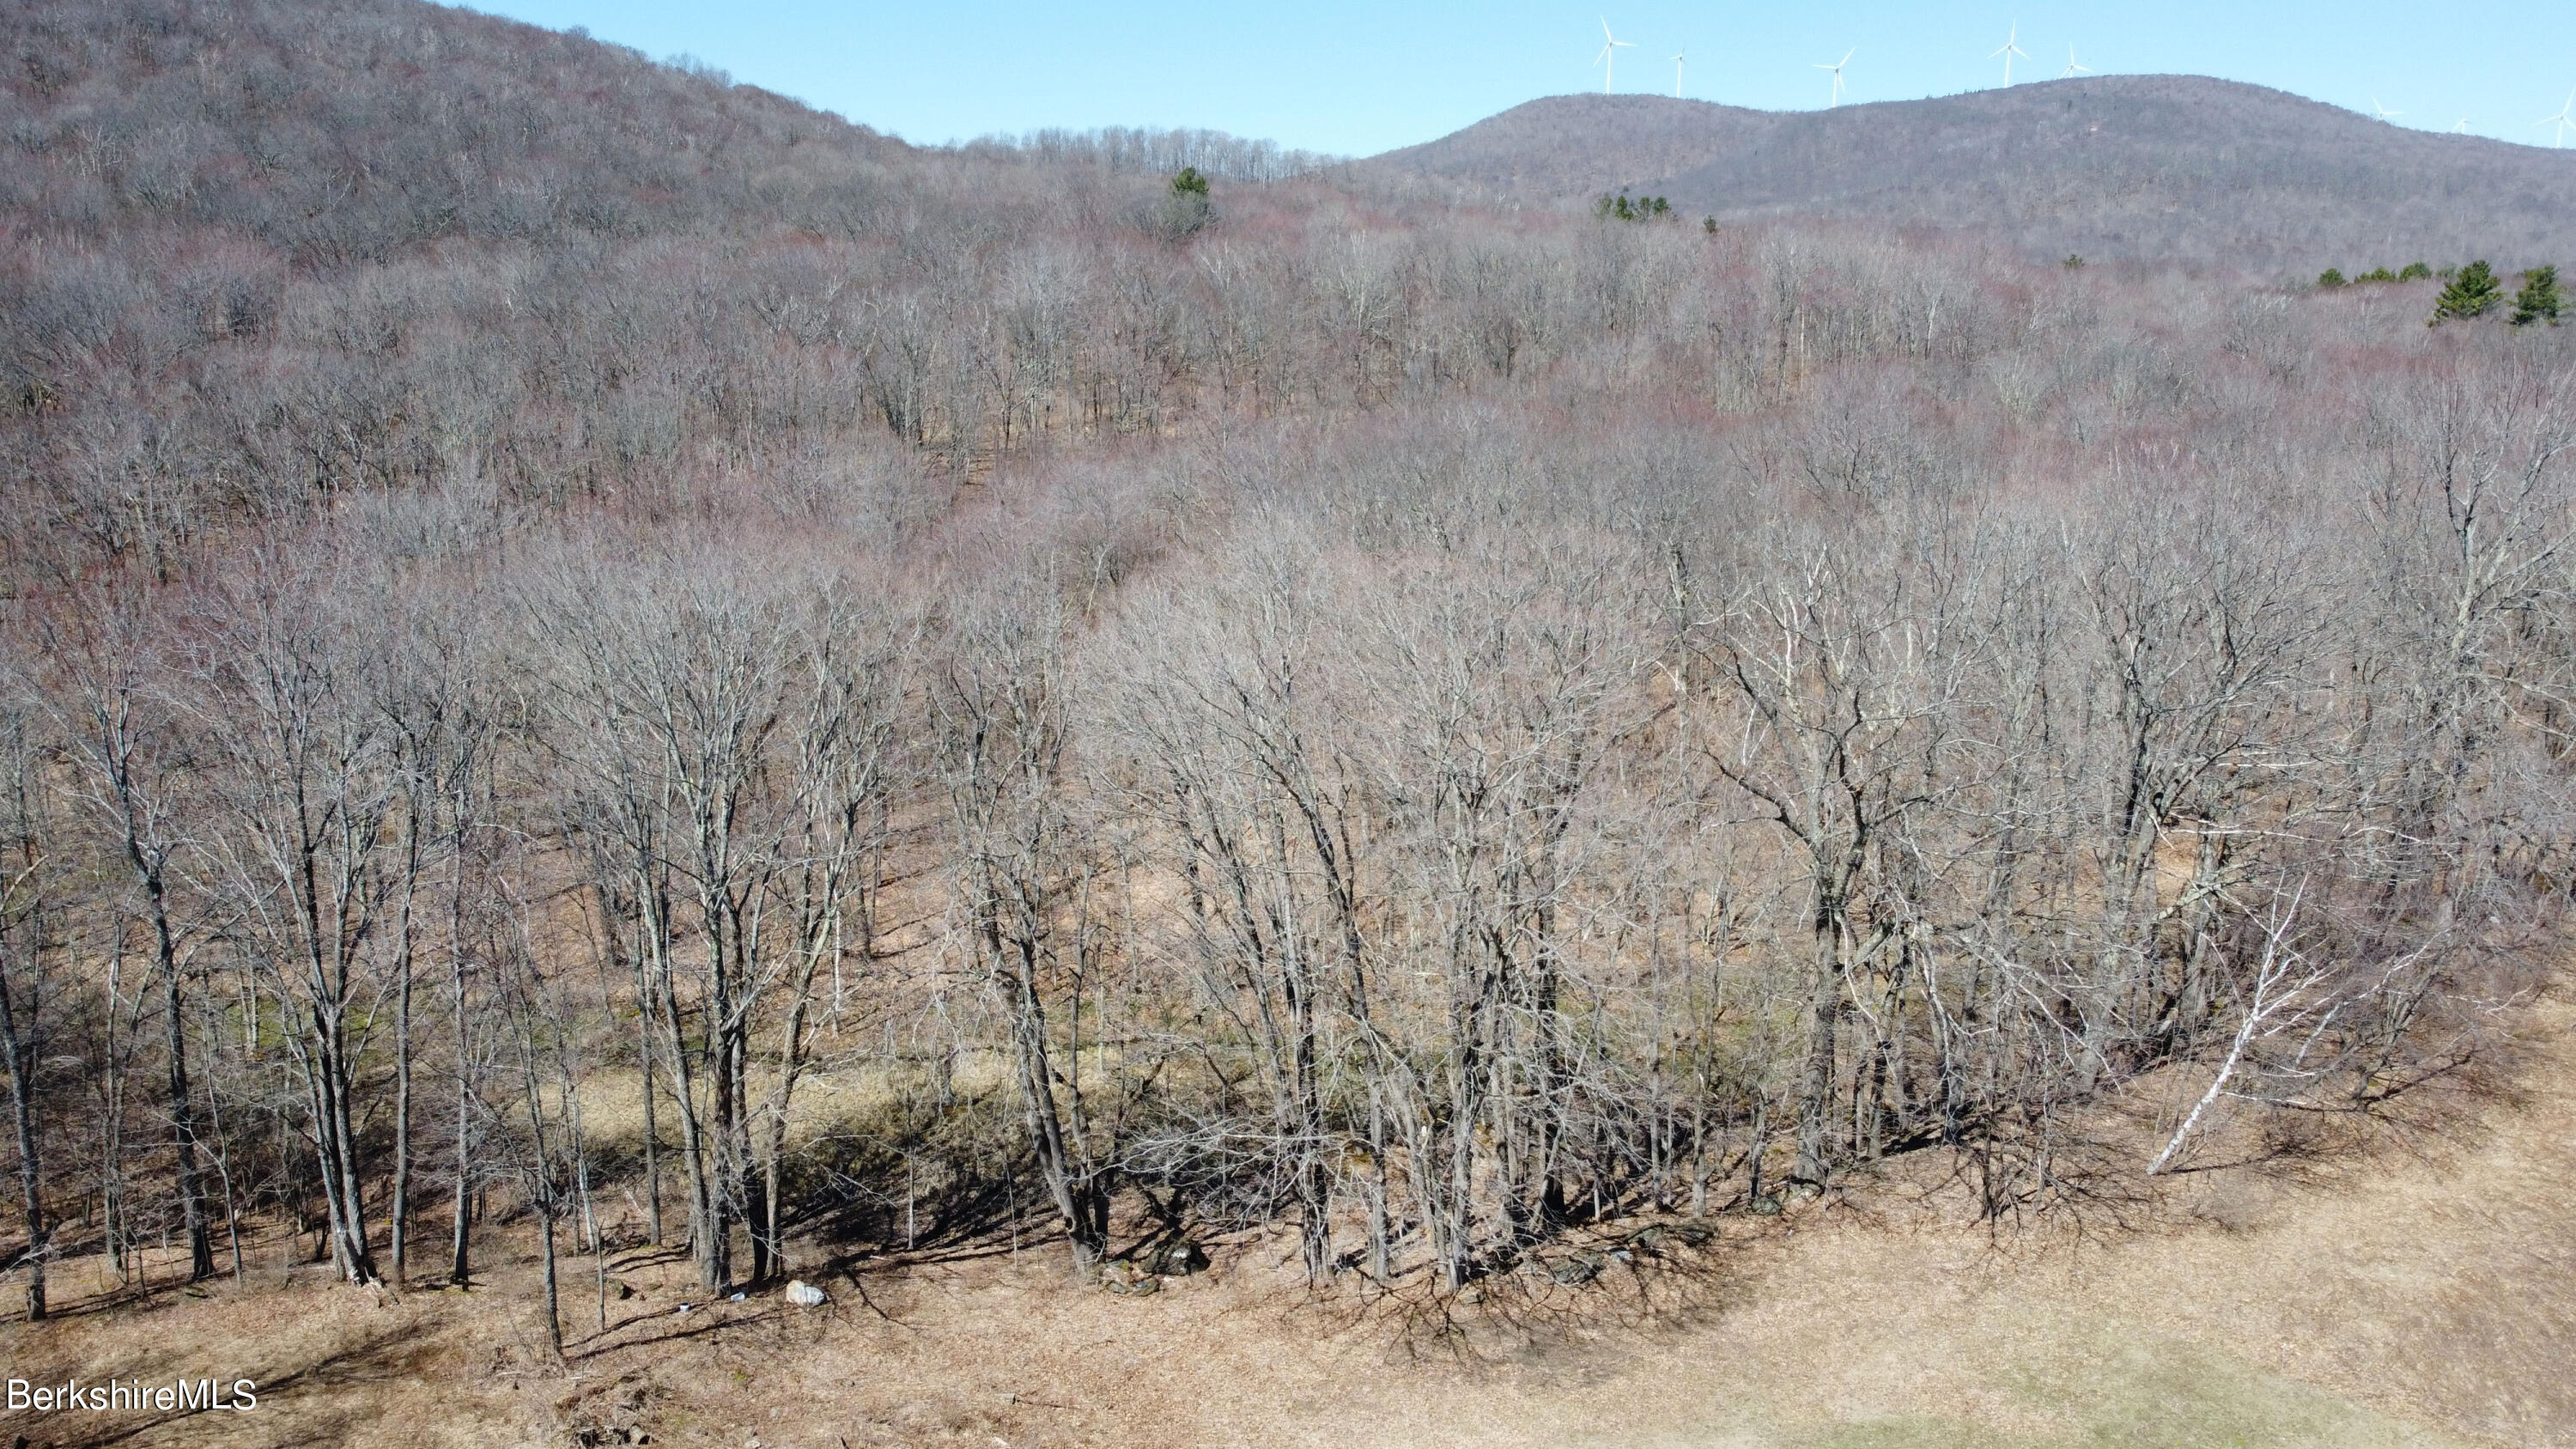 Drone Shot of Tree Area